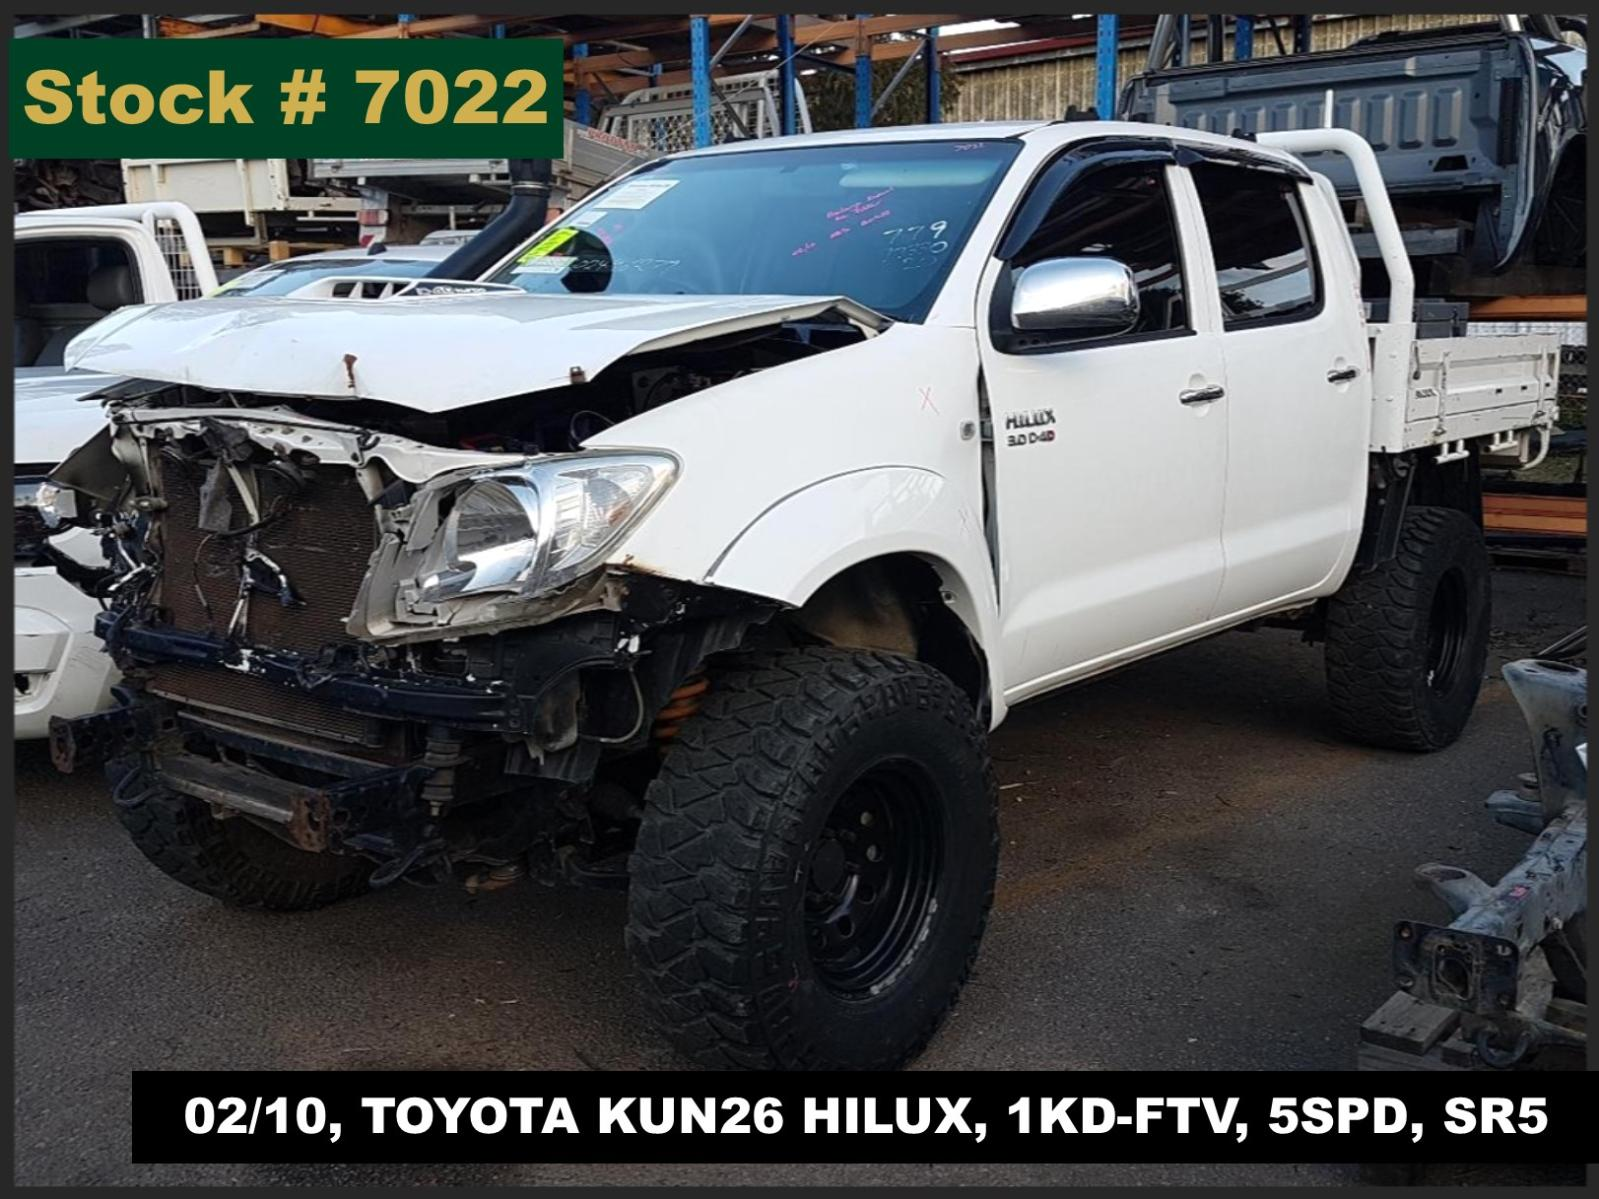 Image for a Toyota Hilux 2010 4 Door Pickup